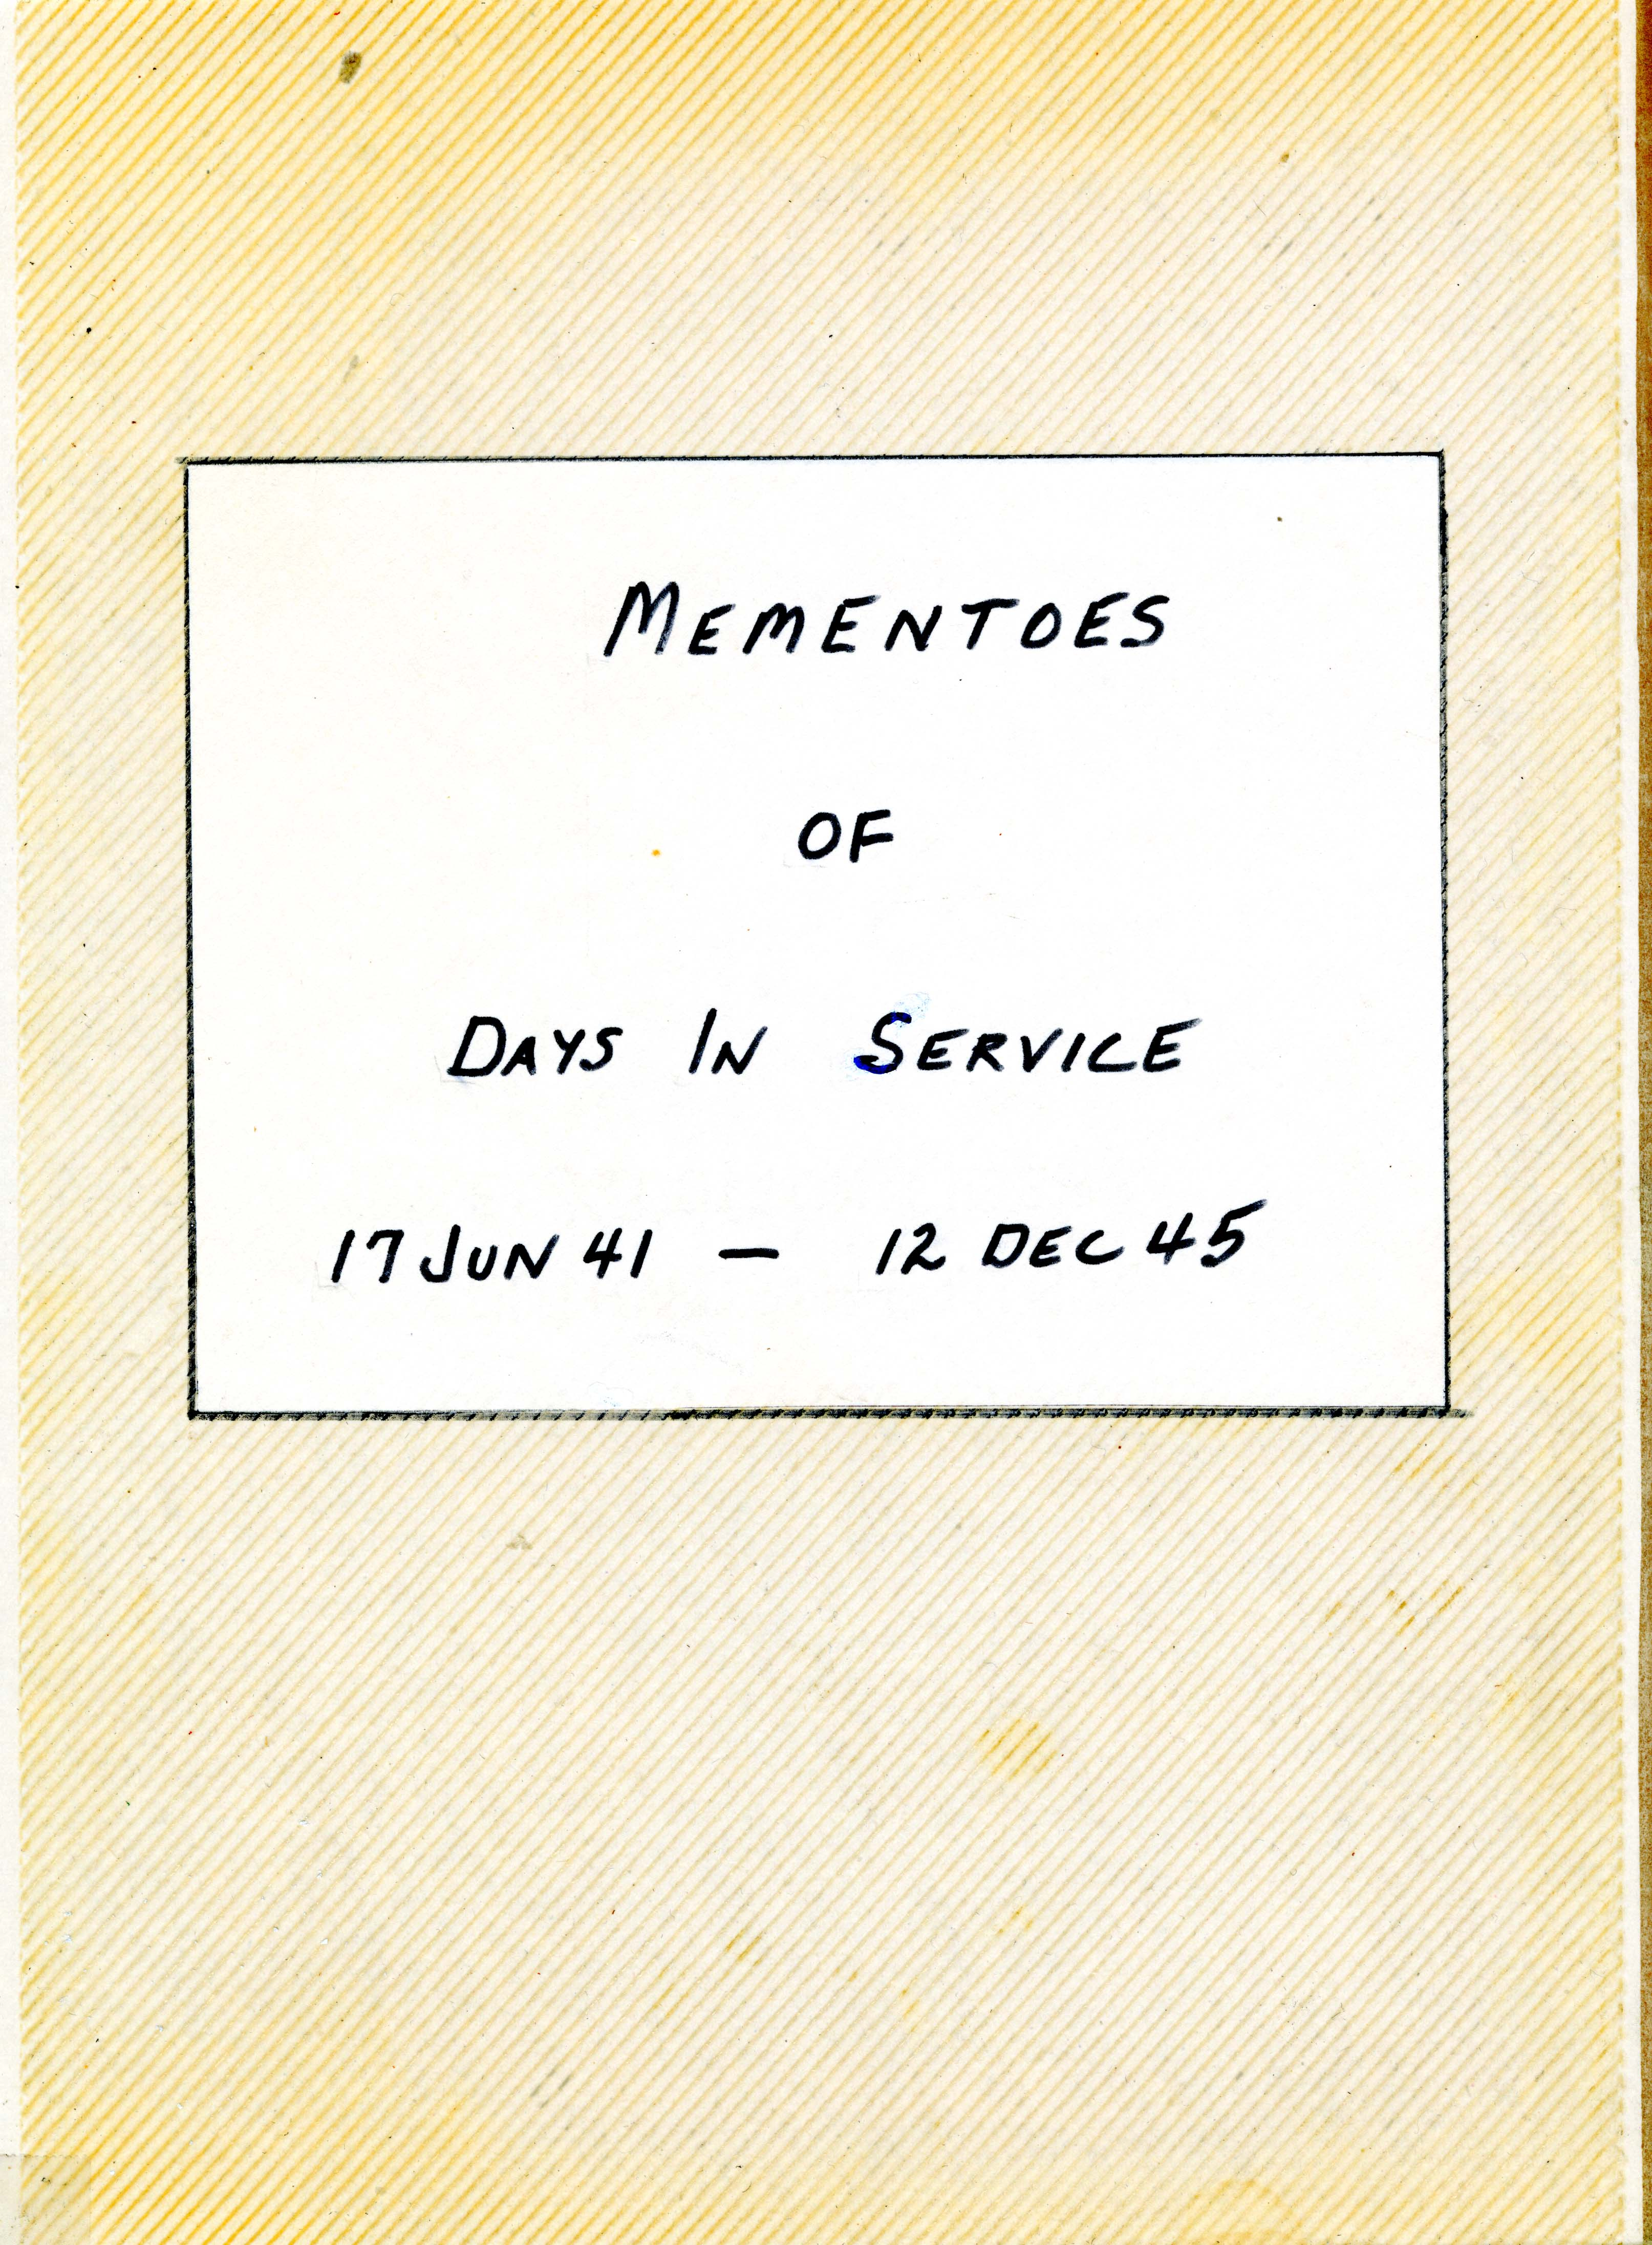 Mementoes of Days in Service, 17 Jun 41 - 12 Dec 45